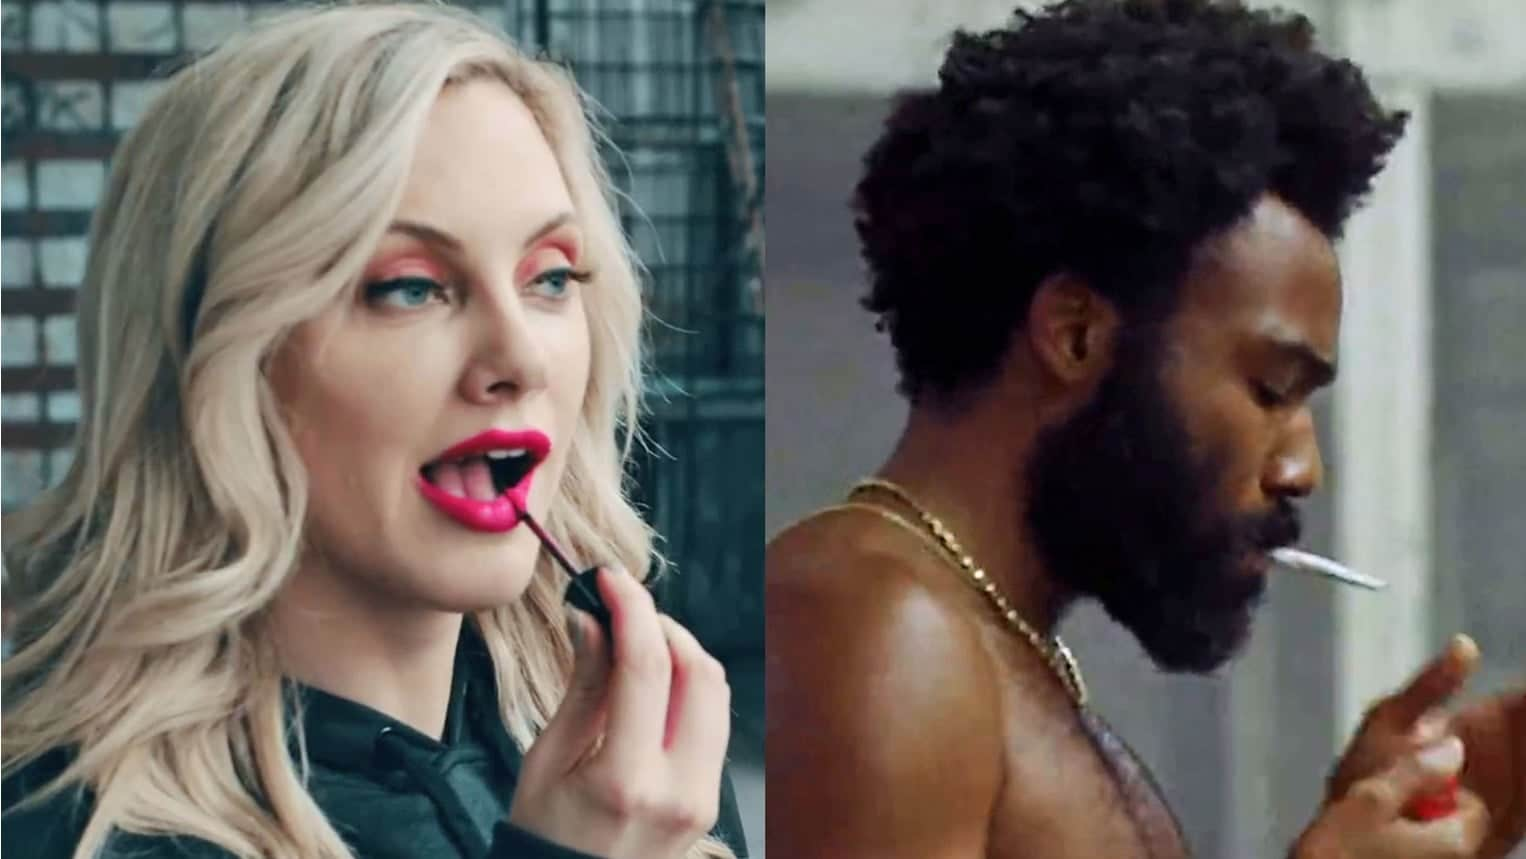 'This is America: Women's Edit' is everything wrong with white feminism - theGrio